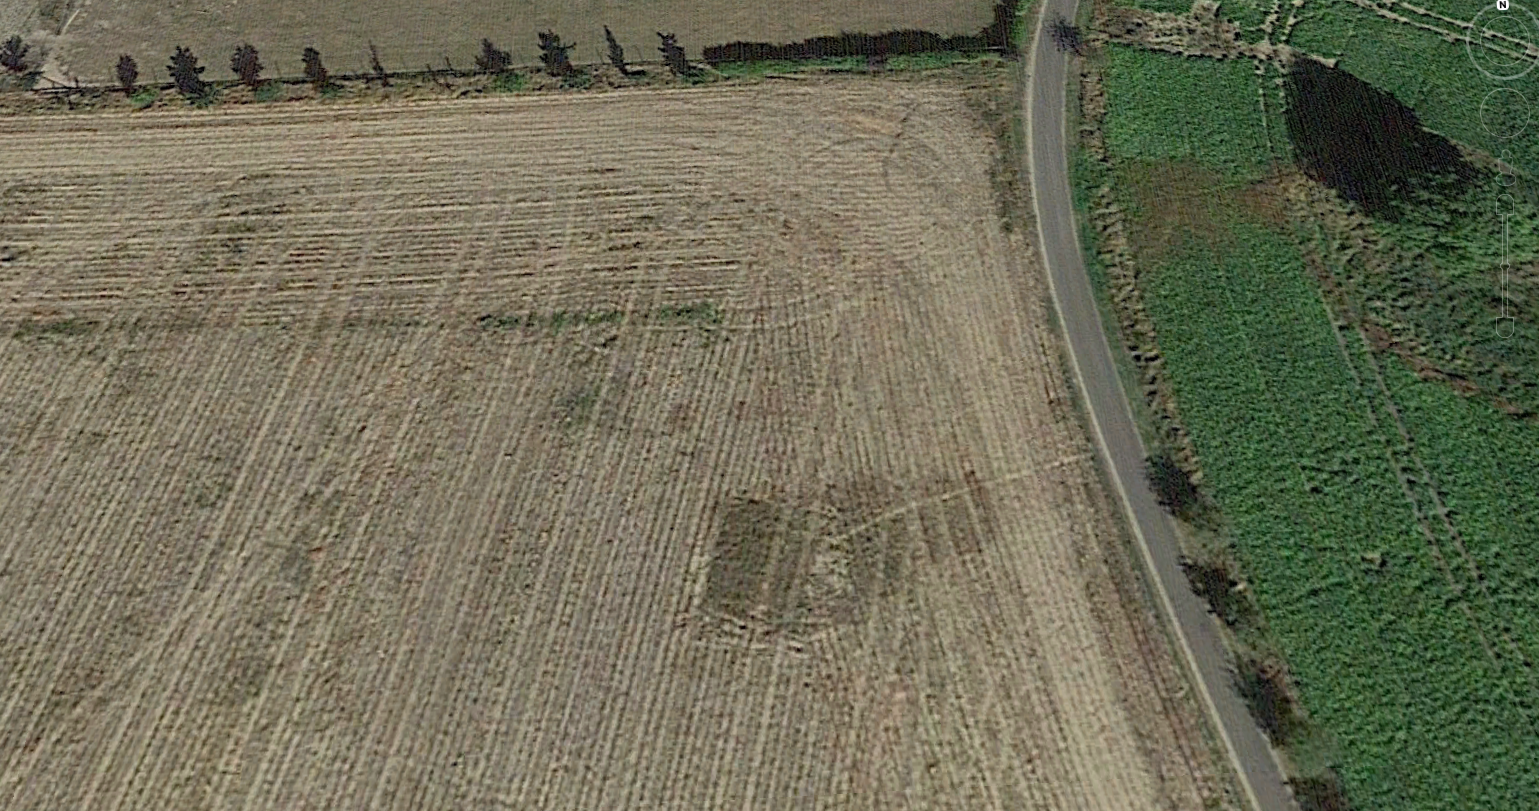 Google Earth 2016, after harvest